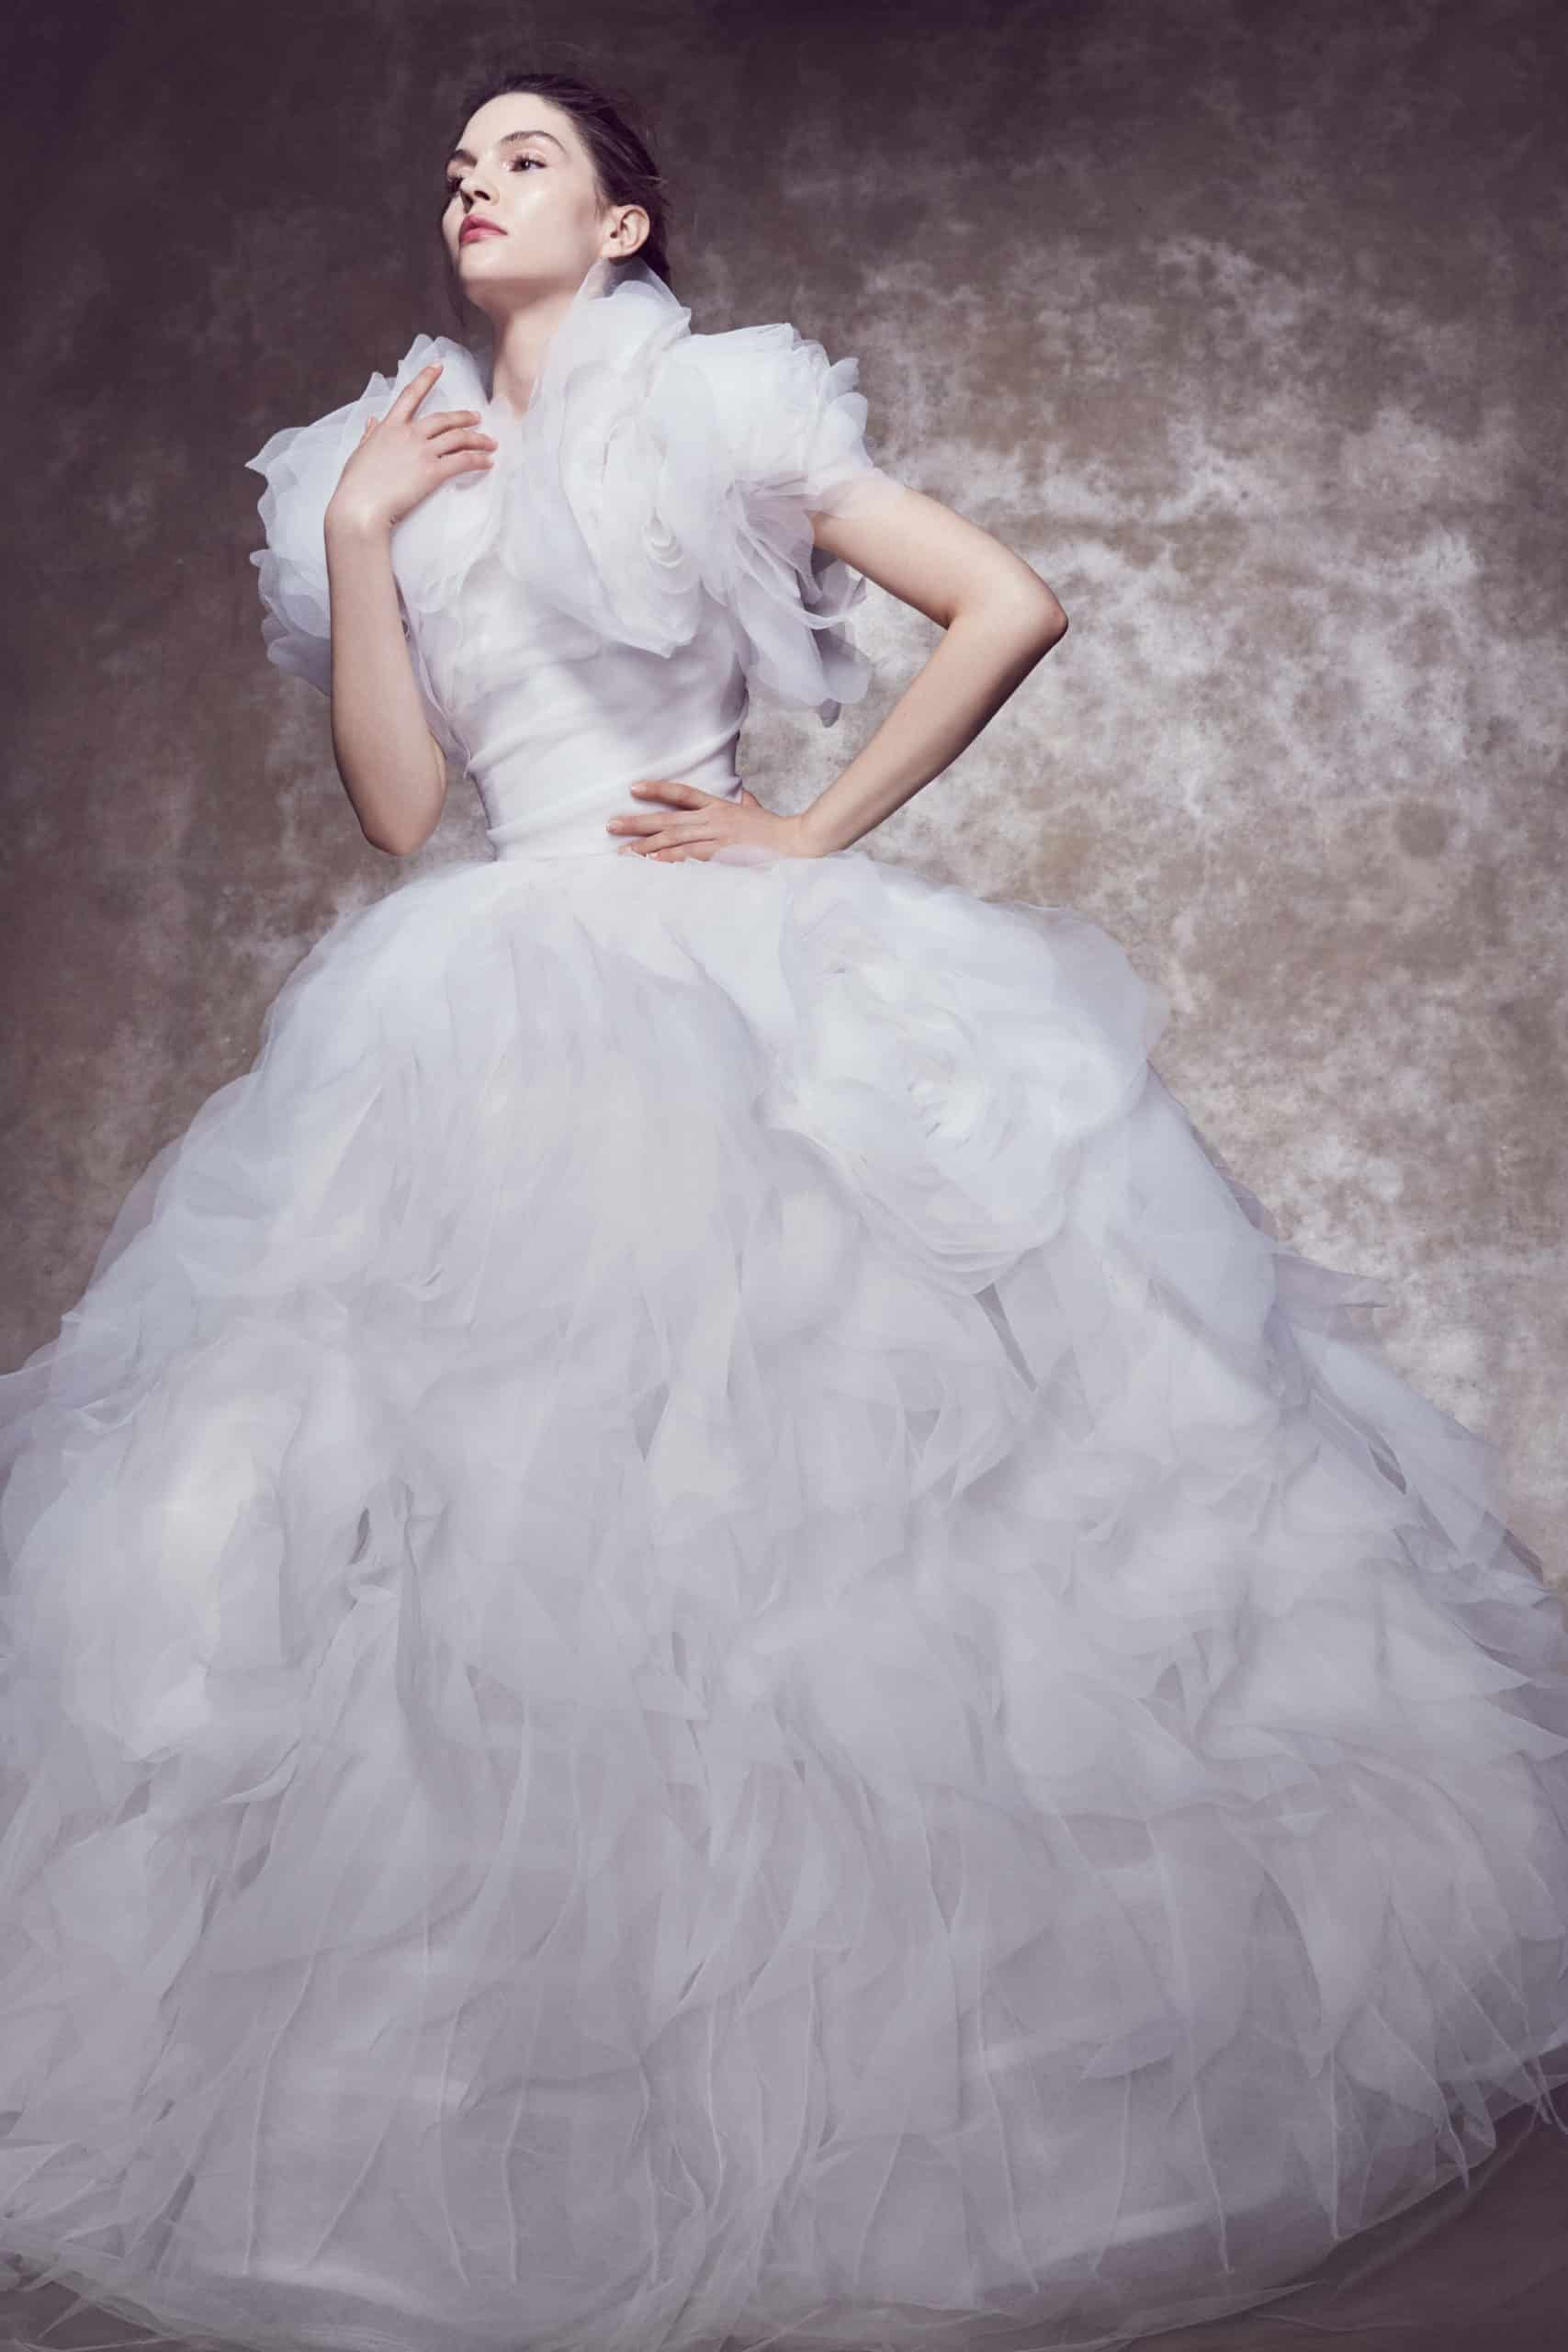 princess line wedding dress with large tulle sleeves by Marchesa